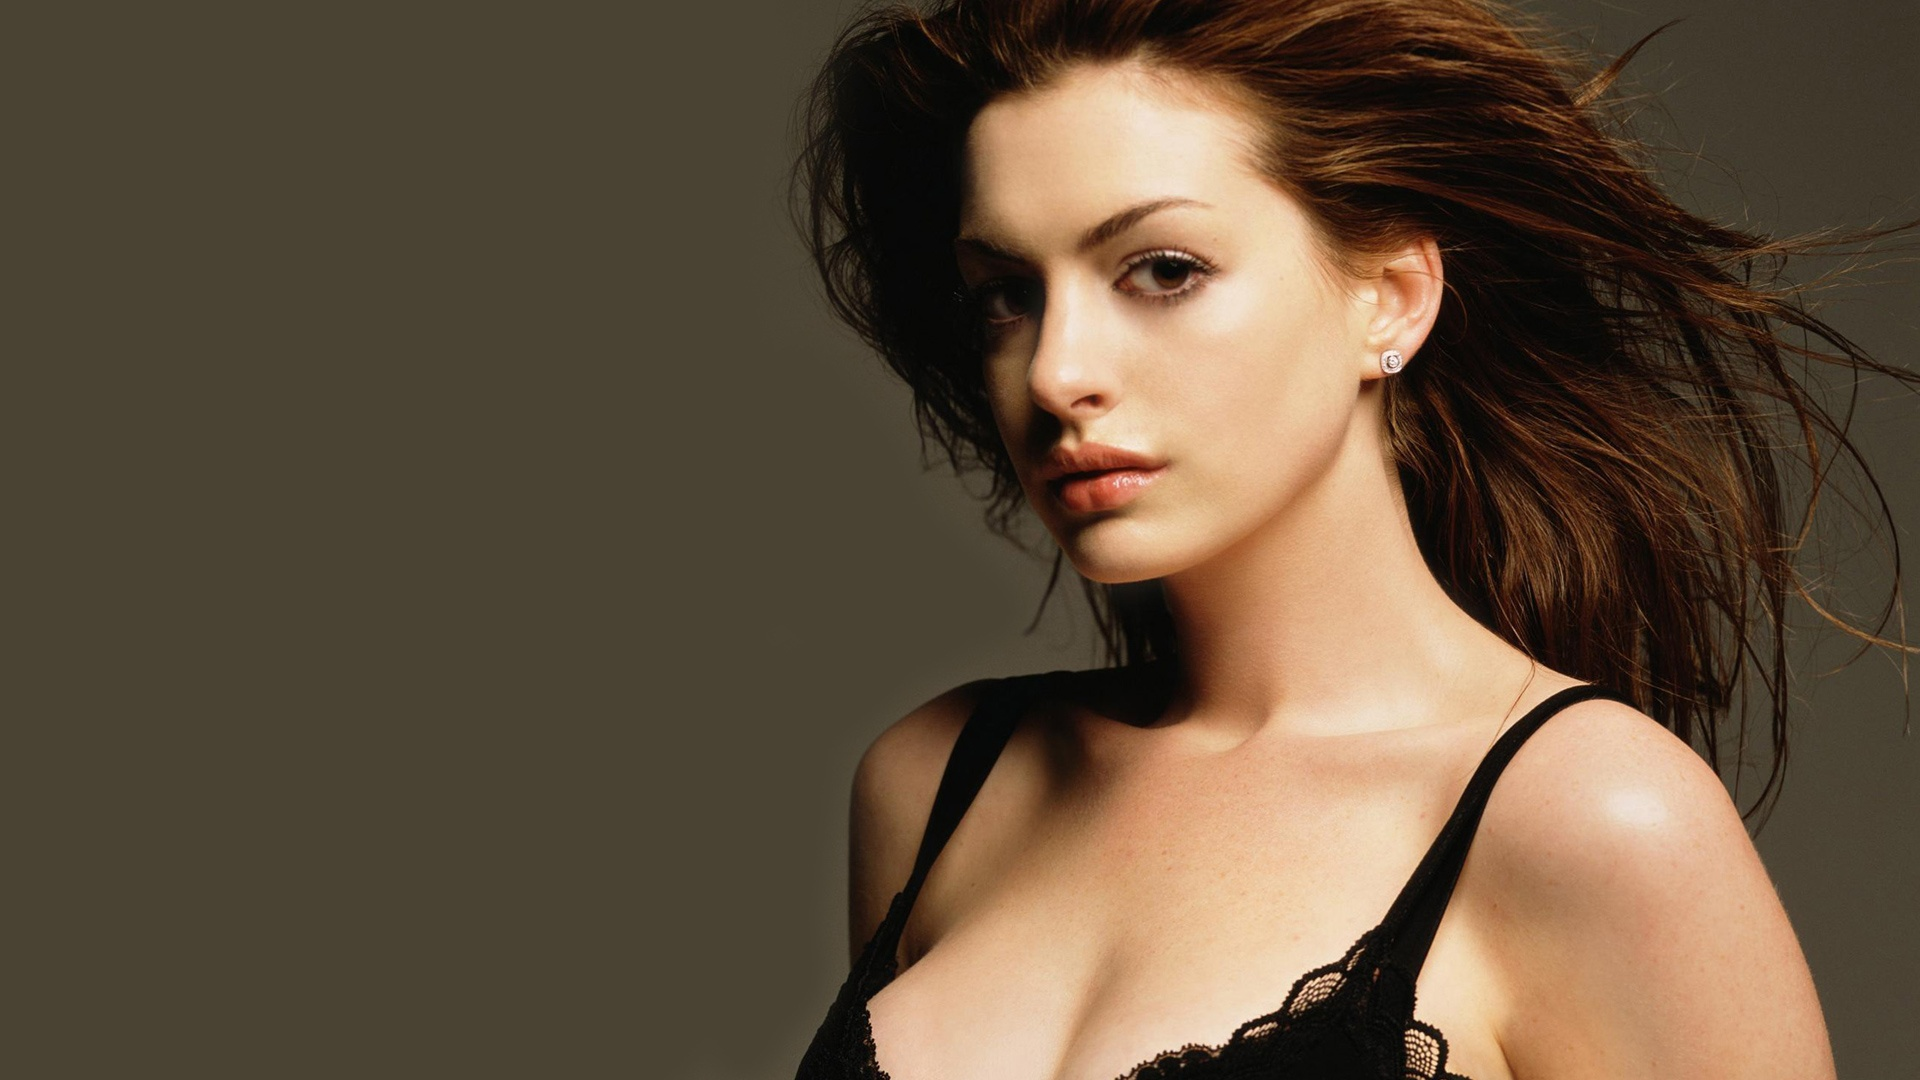 anne hathaway wallpapers hd A6